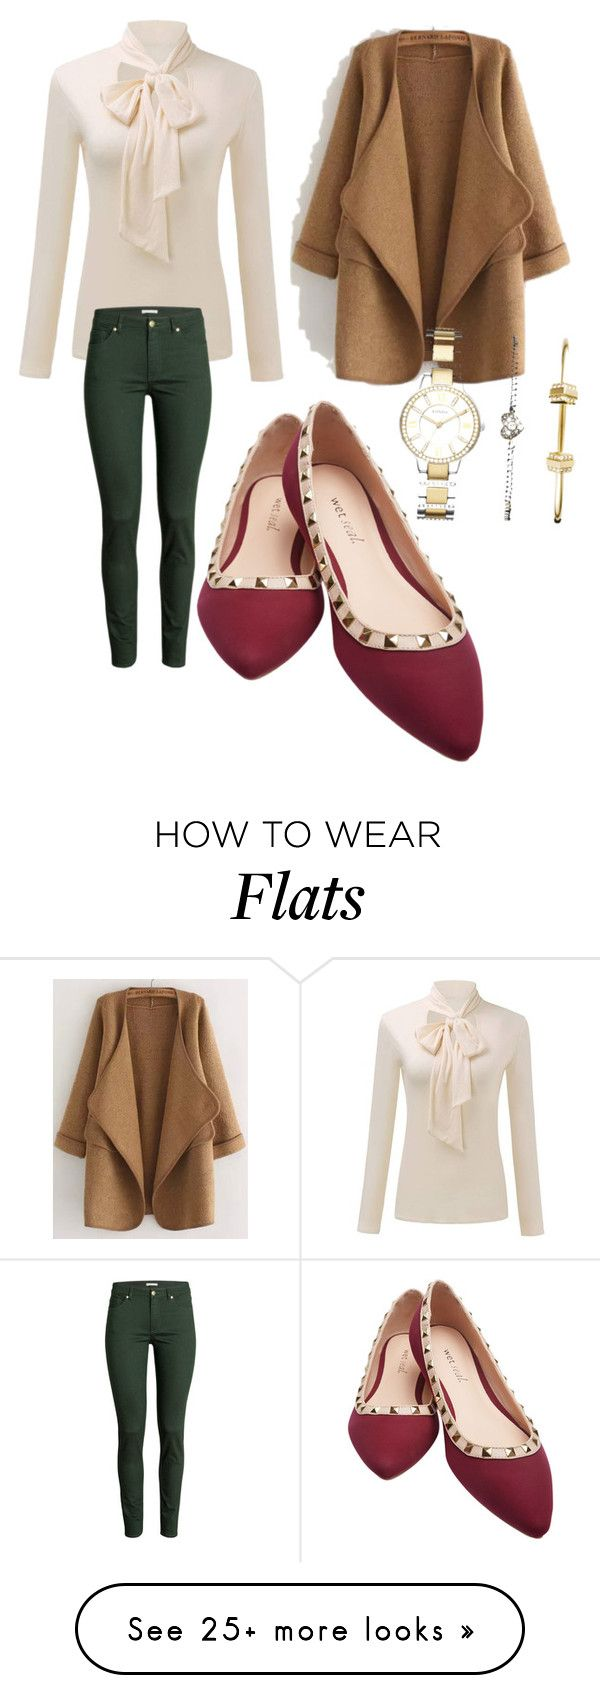 """Untitled #1"" by maggiedust on Polyvore featuring Wet Seal, WithChic, H&M and FOSSIL"